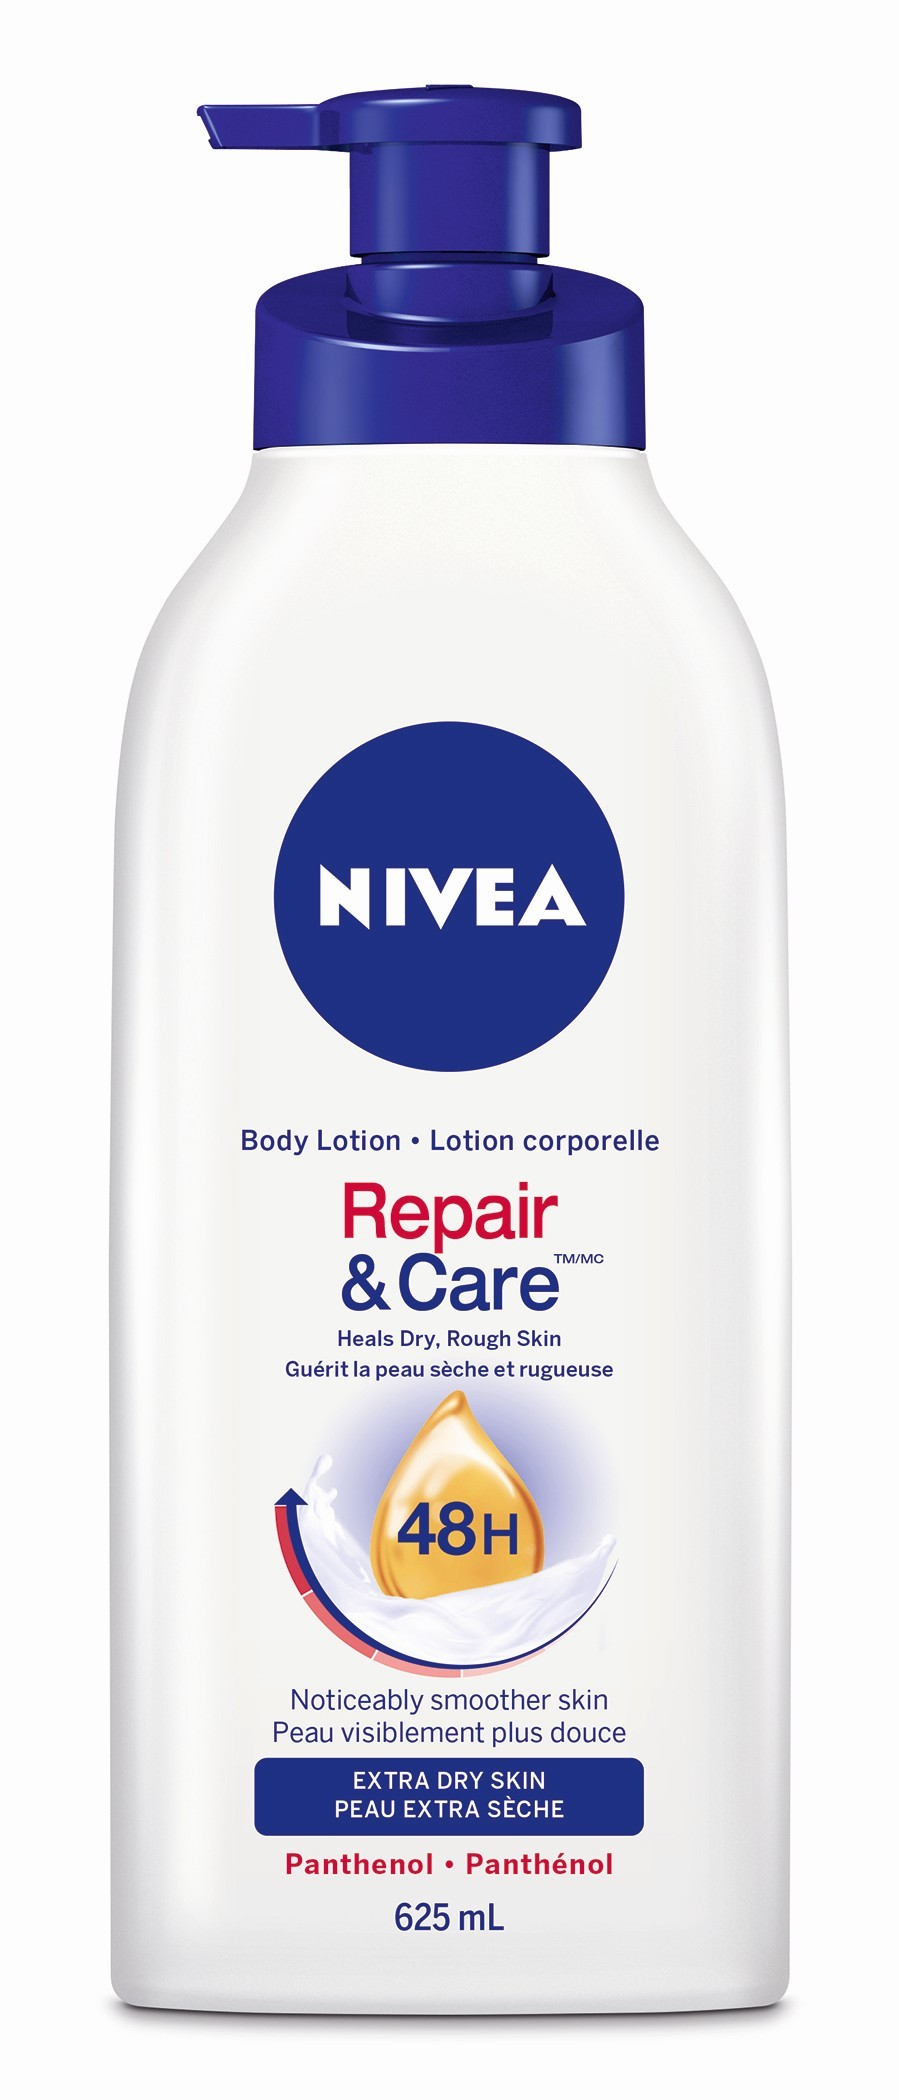 Nivea care for all your skin; whether you're male or female, young or old, fair or dark, oily or dry, sensitive, normal or anything in between. They have developed numerous innovative skin care products over the past few decades – from deodorants to sunscreen products.